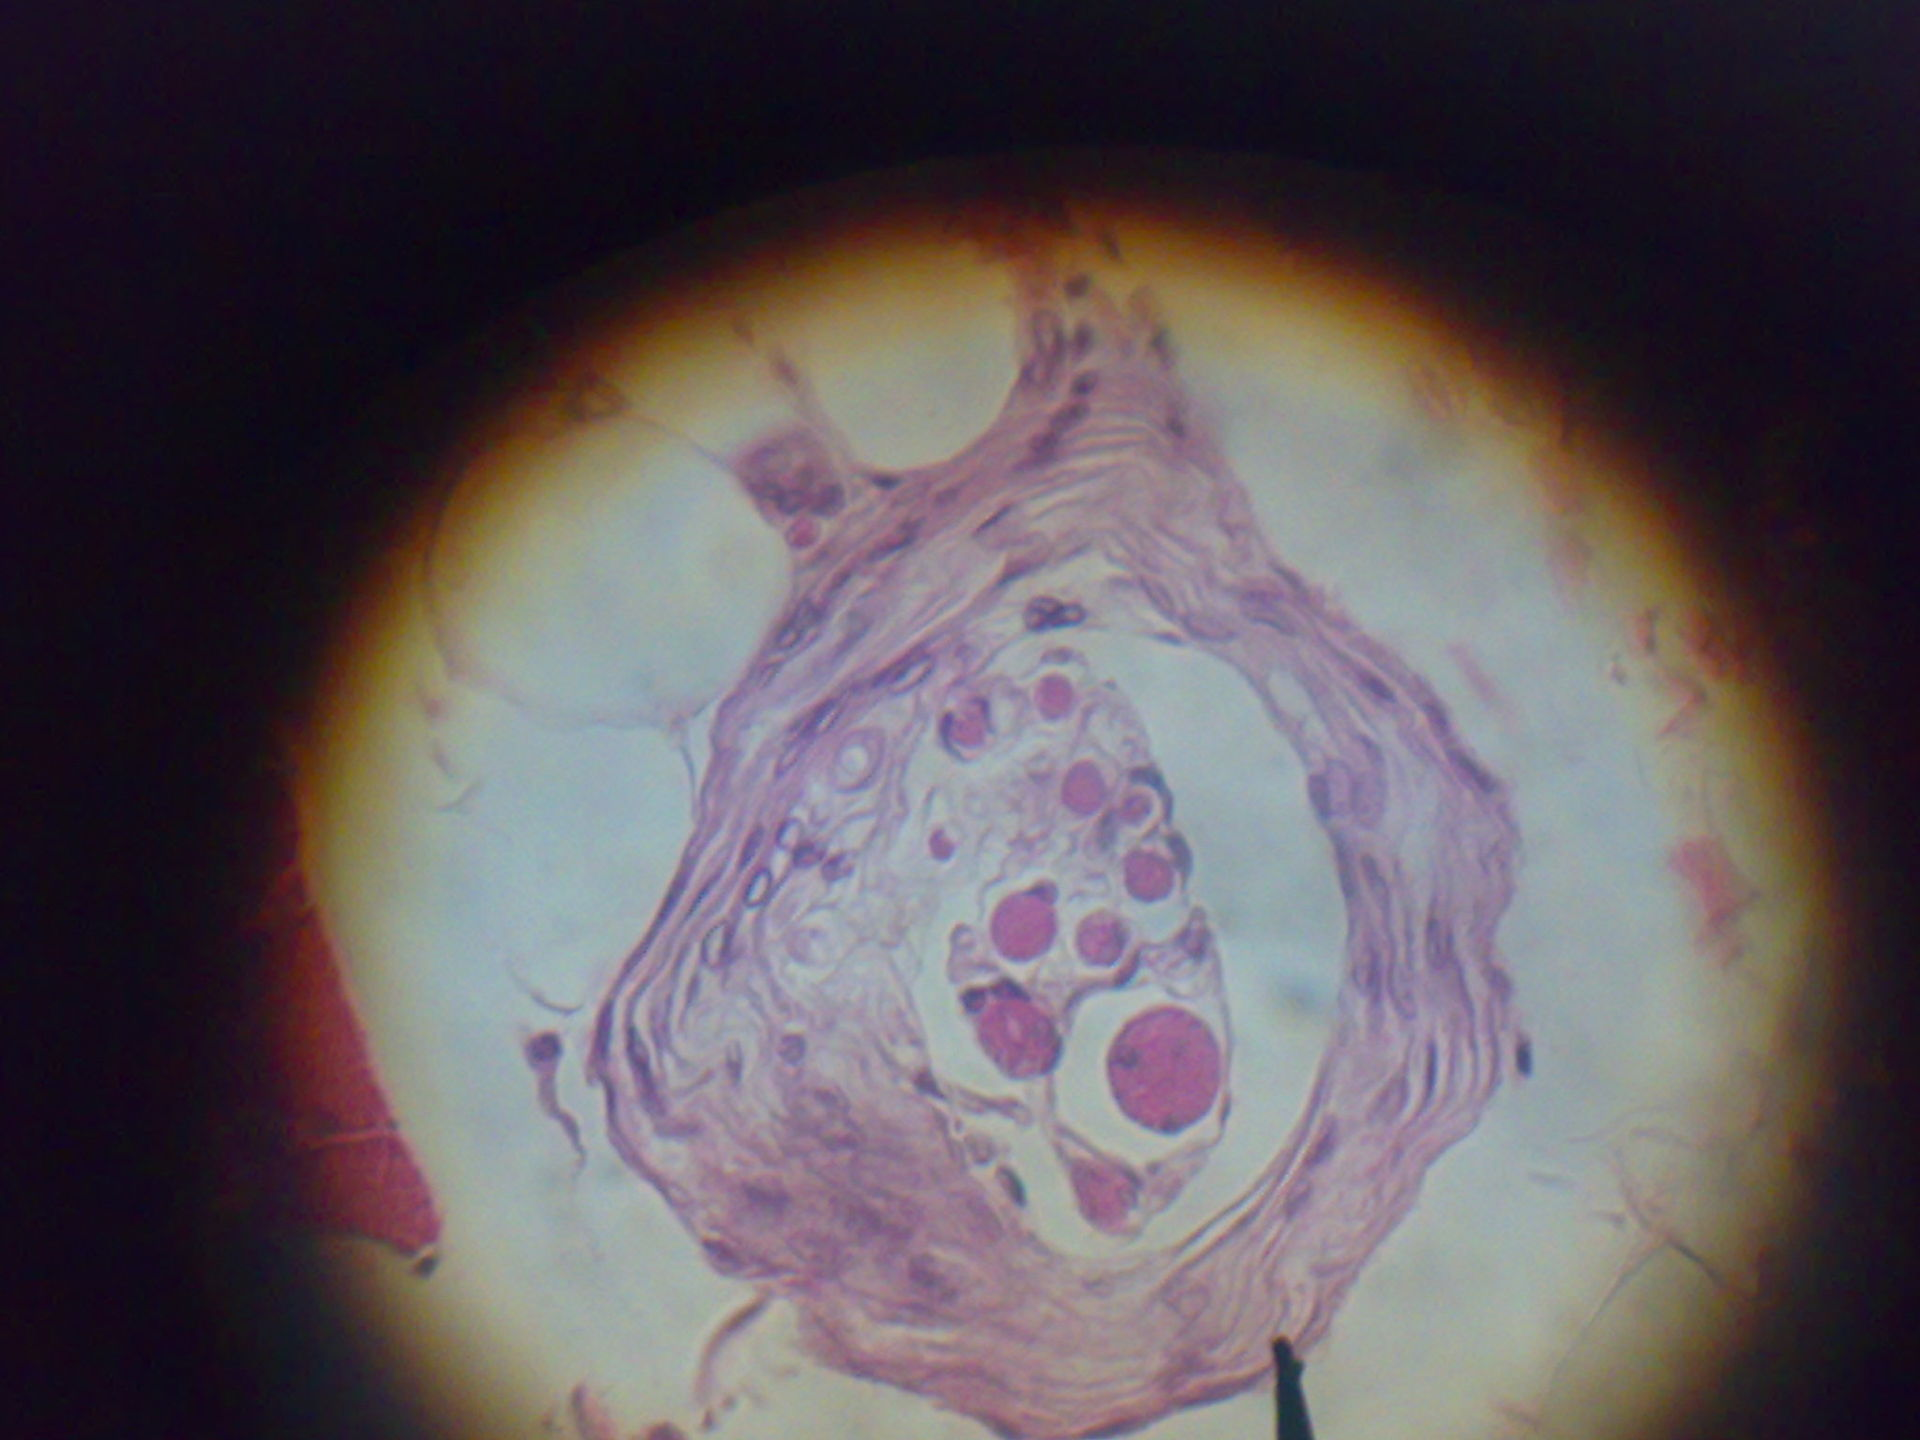 Muscle Spindle under microscope